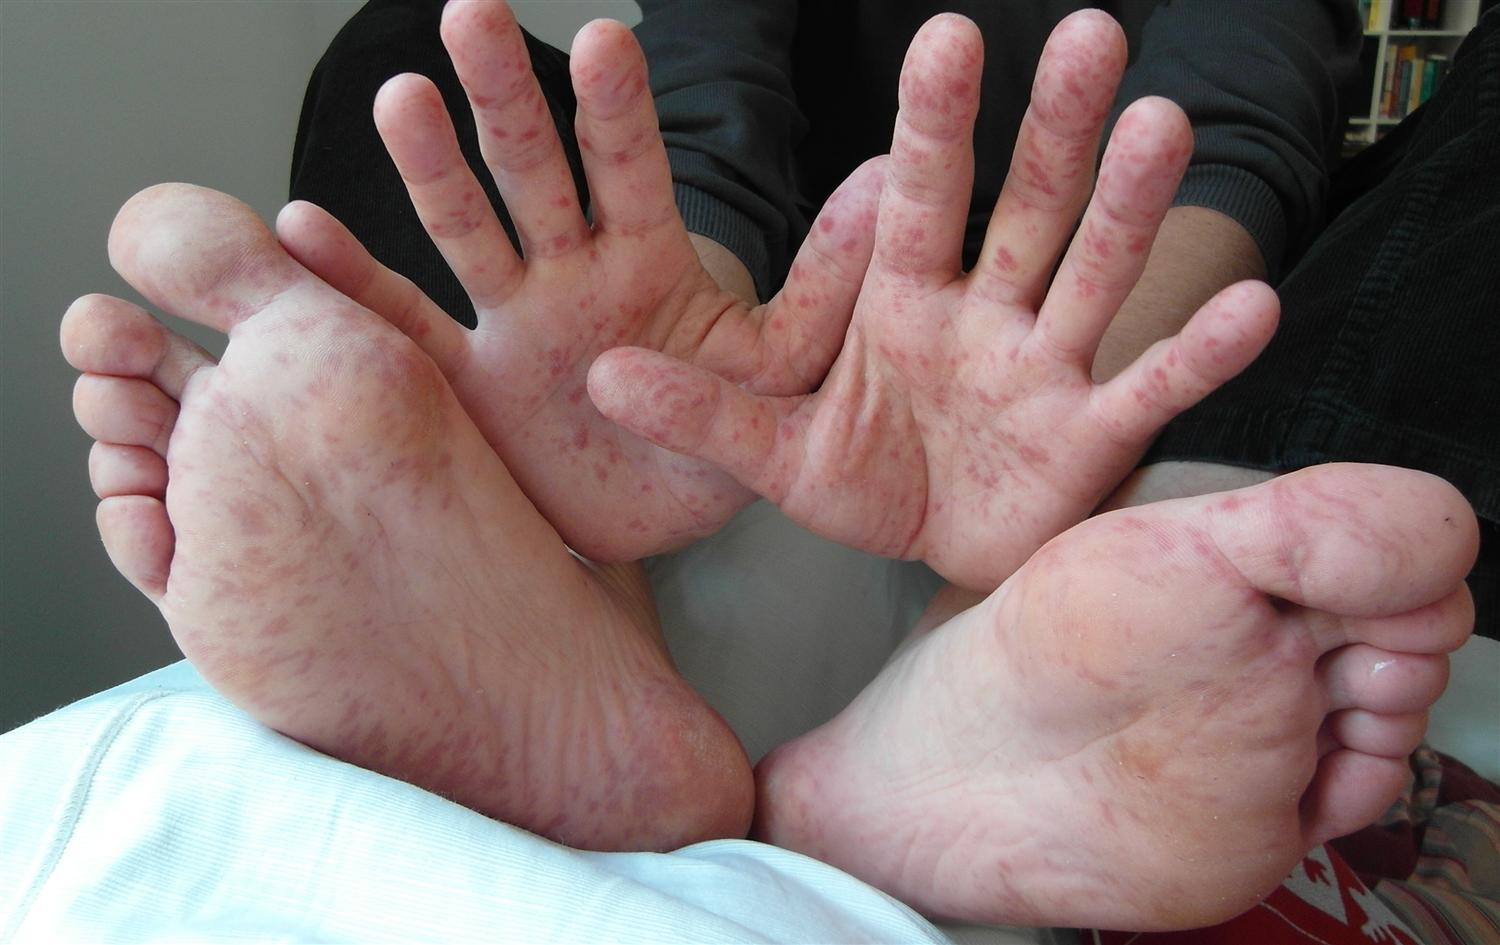 Hand-Foot-and-Mouth Disease - Pediatrics - Medbullets Step 2/3